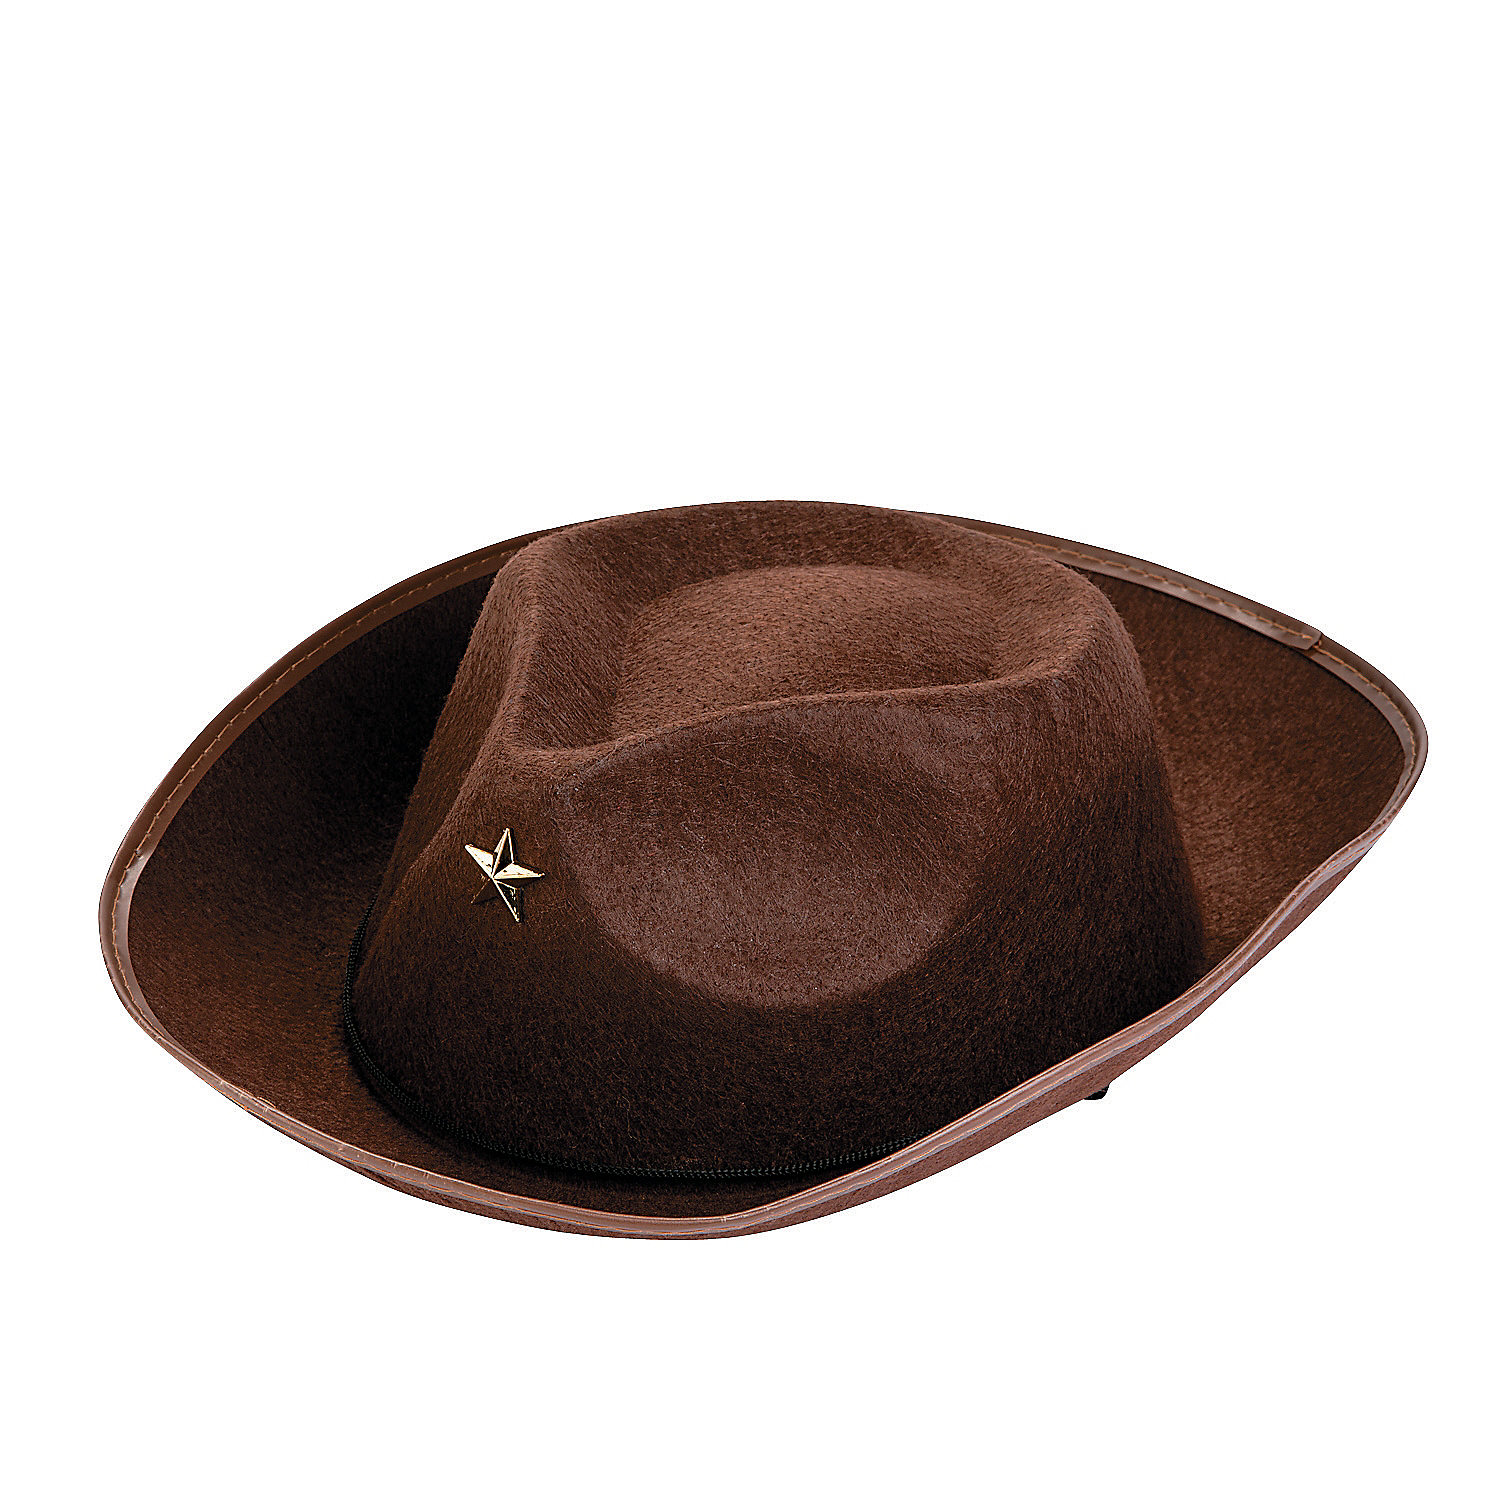 bc323f459953e Child Brown Cowboy Hats with Star - 12pk Party Supplies Canada ...